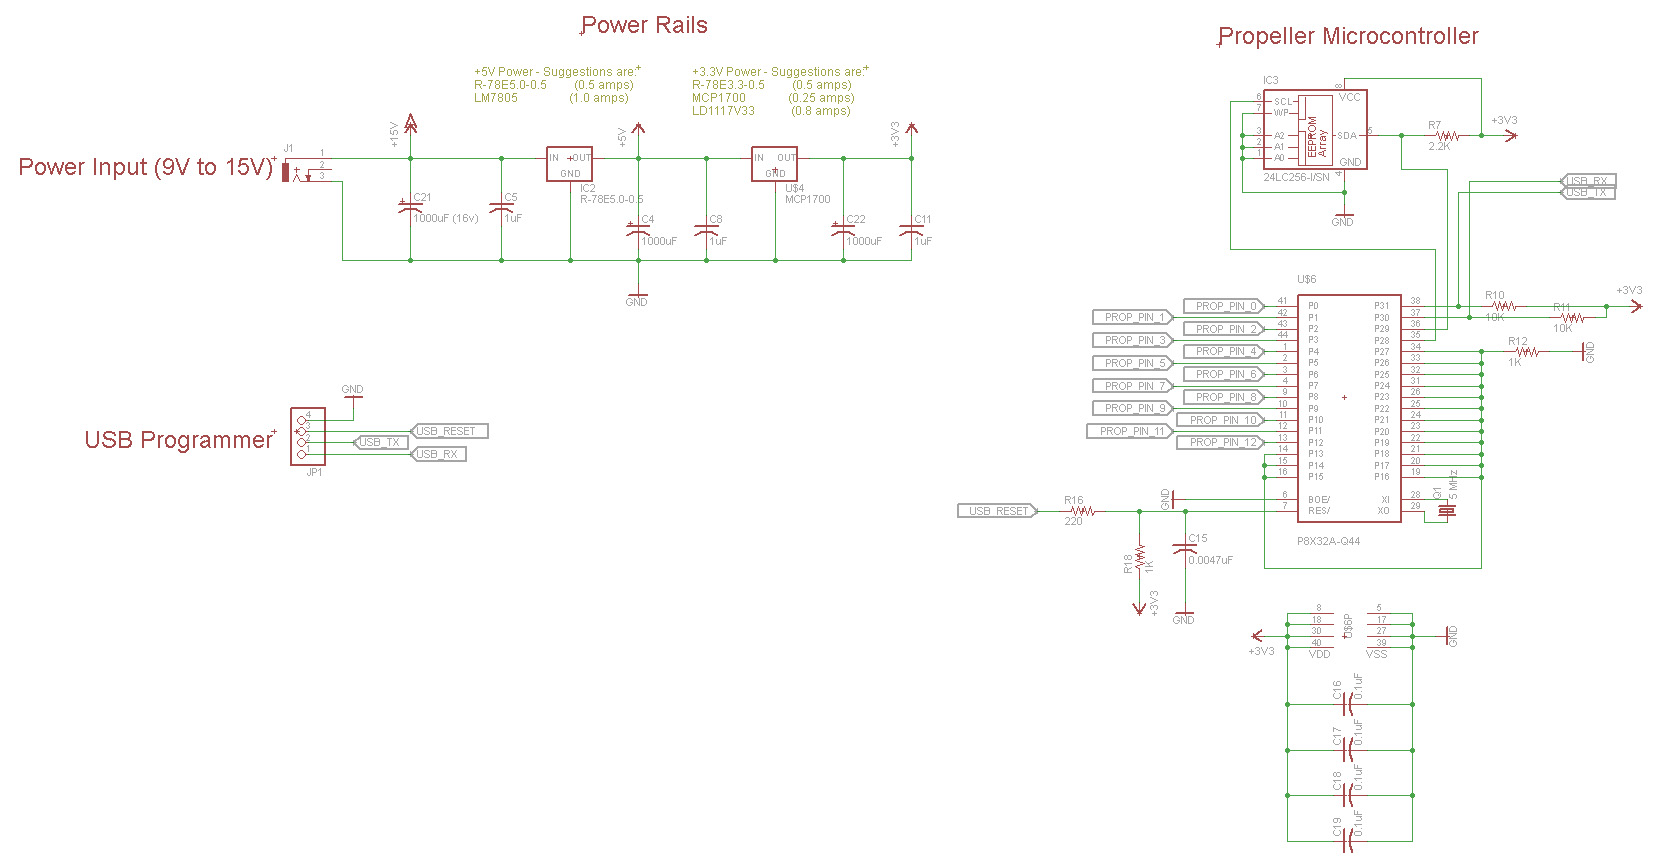 Propeller Circuit Template And Best Practices